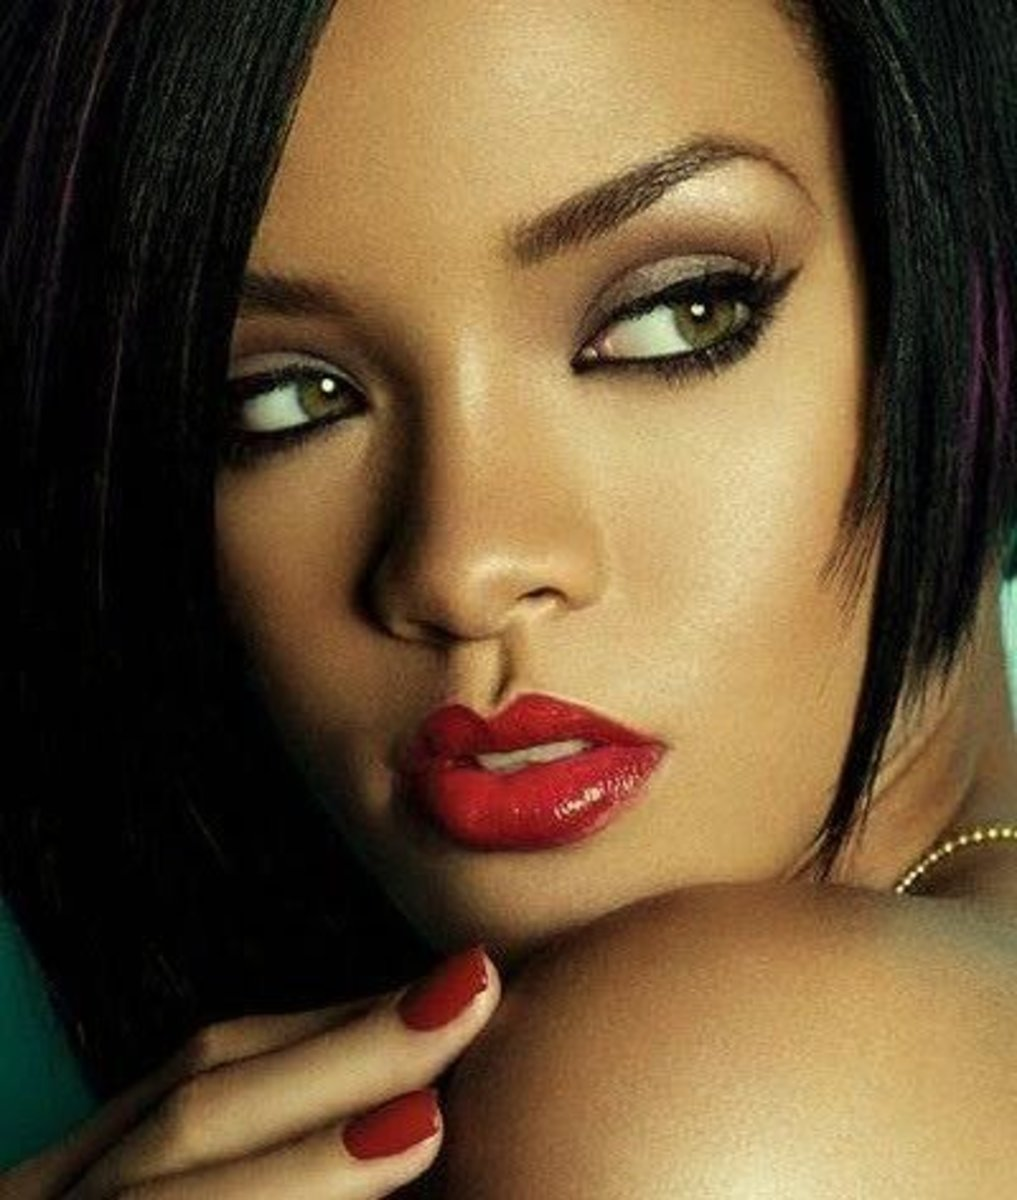 Rihanna - Black woman with green eyes